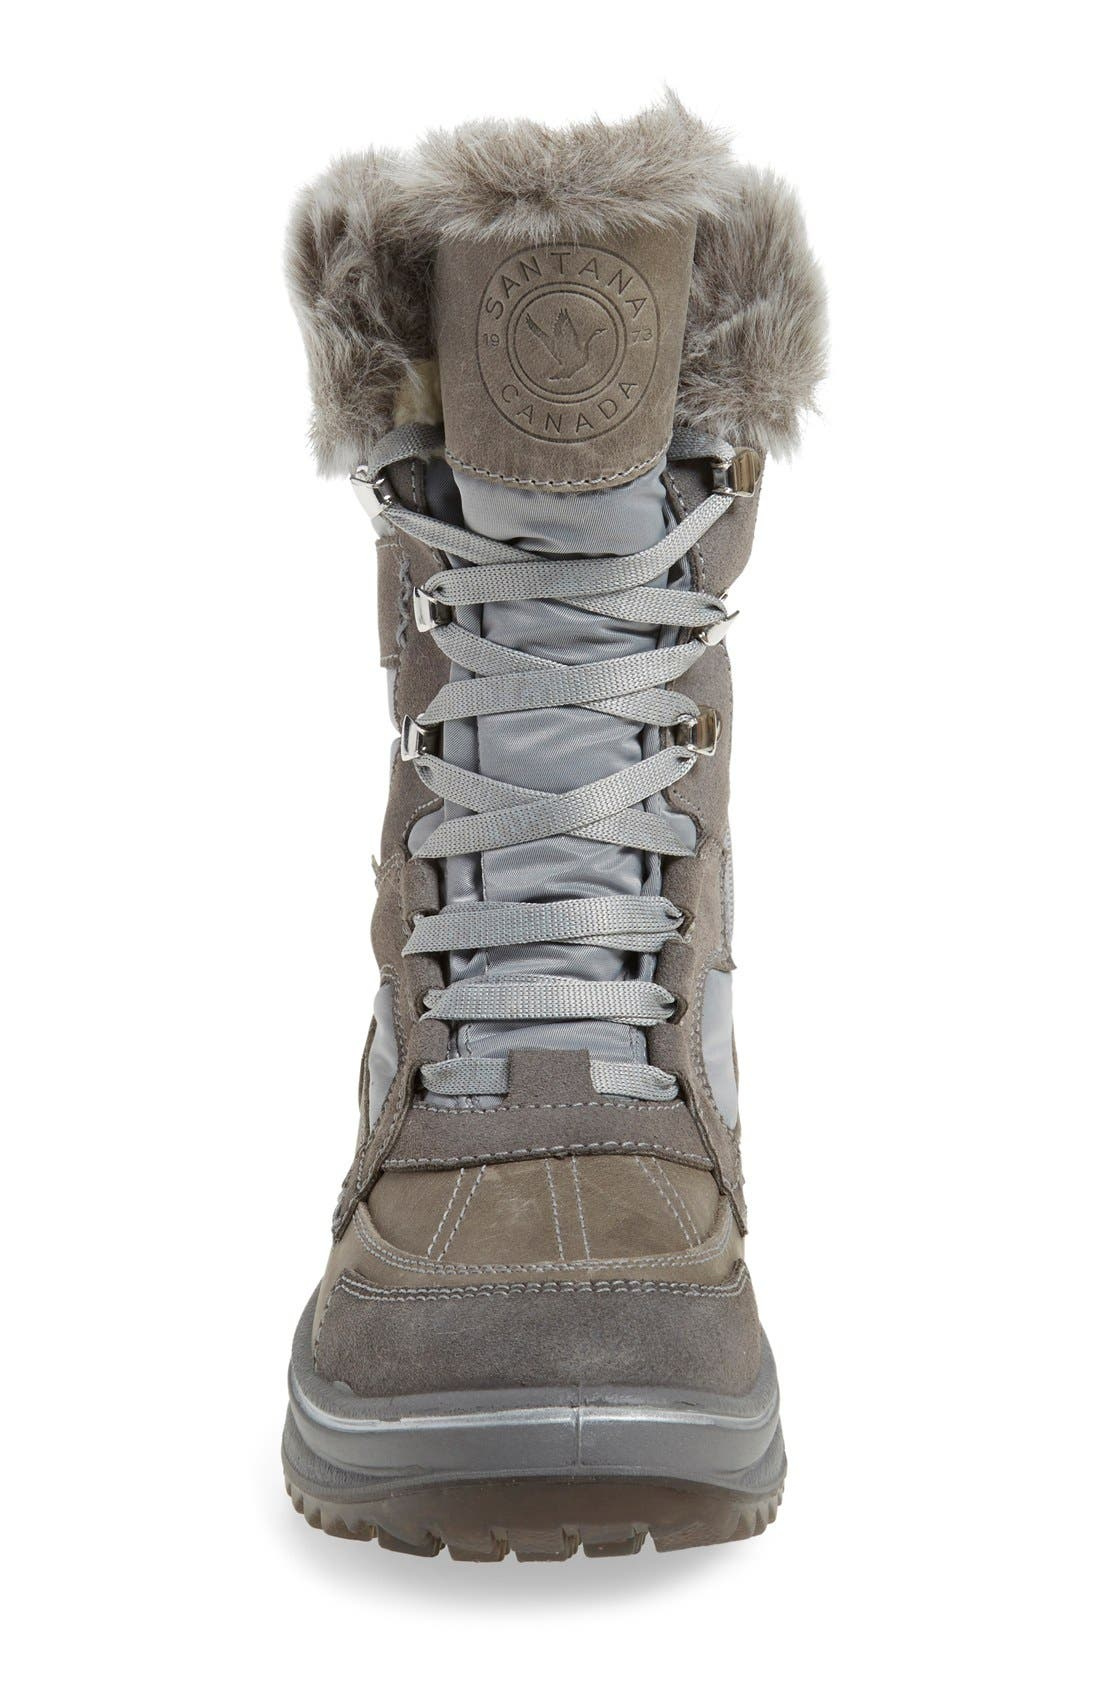 'Marta' Water Resistant Insulated Winter Boot,                             Alternate thumbnail 3, color,                             Grey Fabric